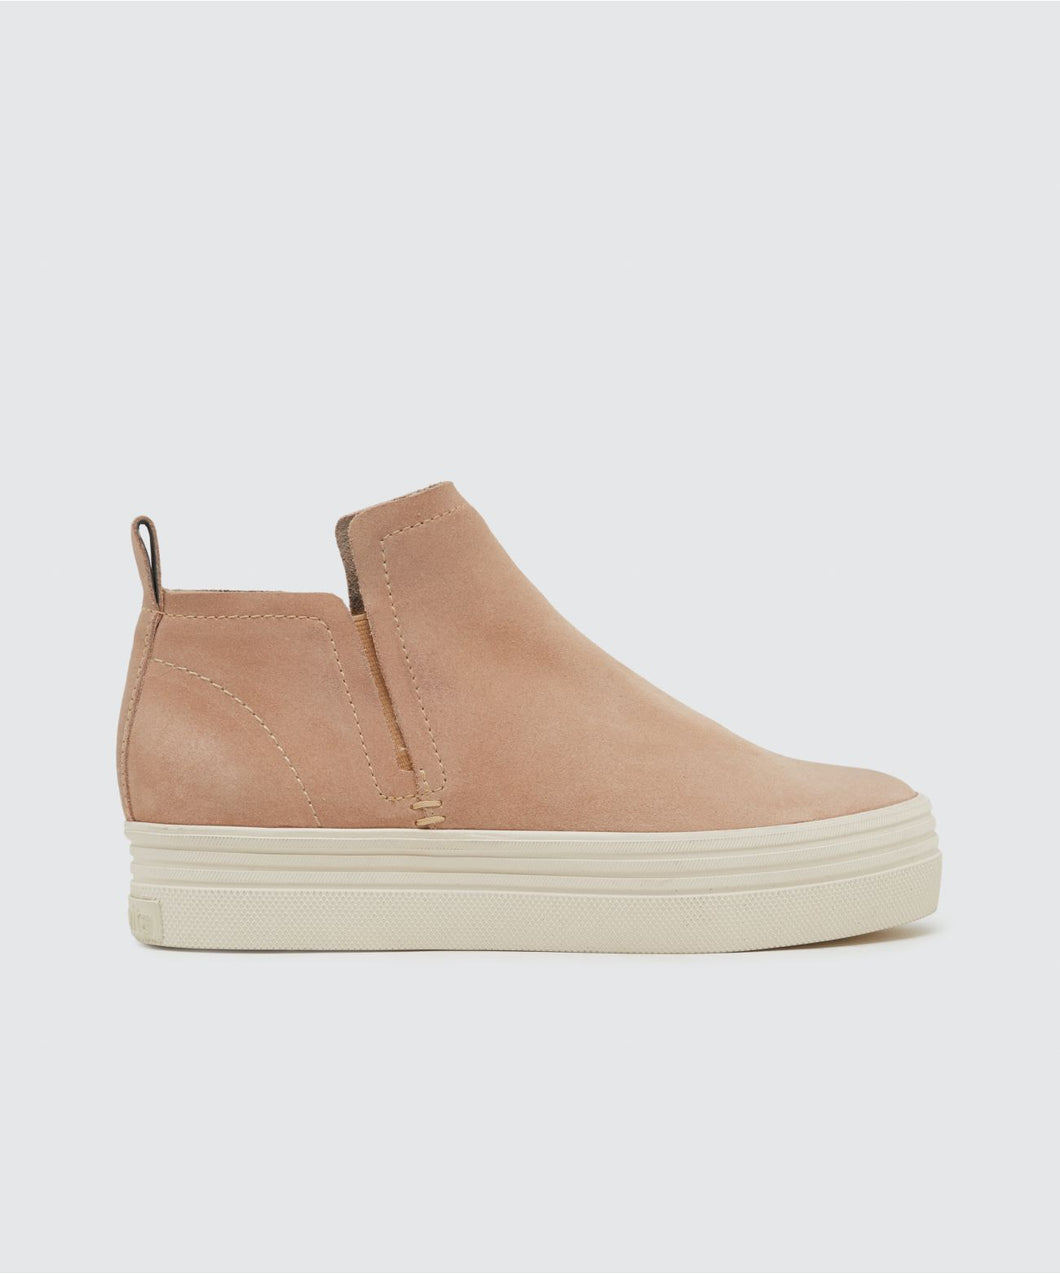 TATE SNEAKERS IN BLUSH -   Dolce Vita